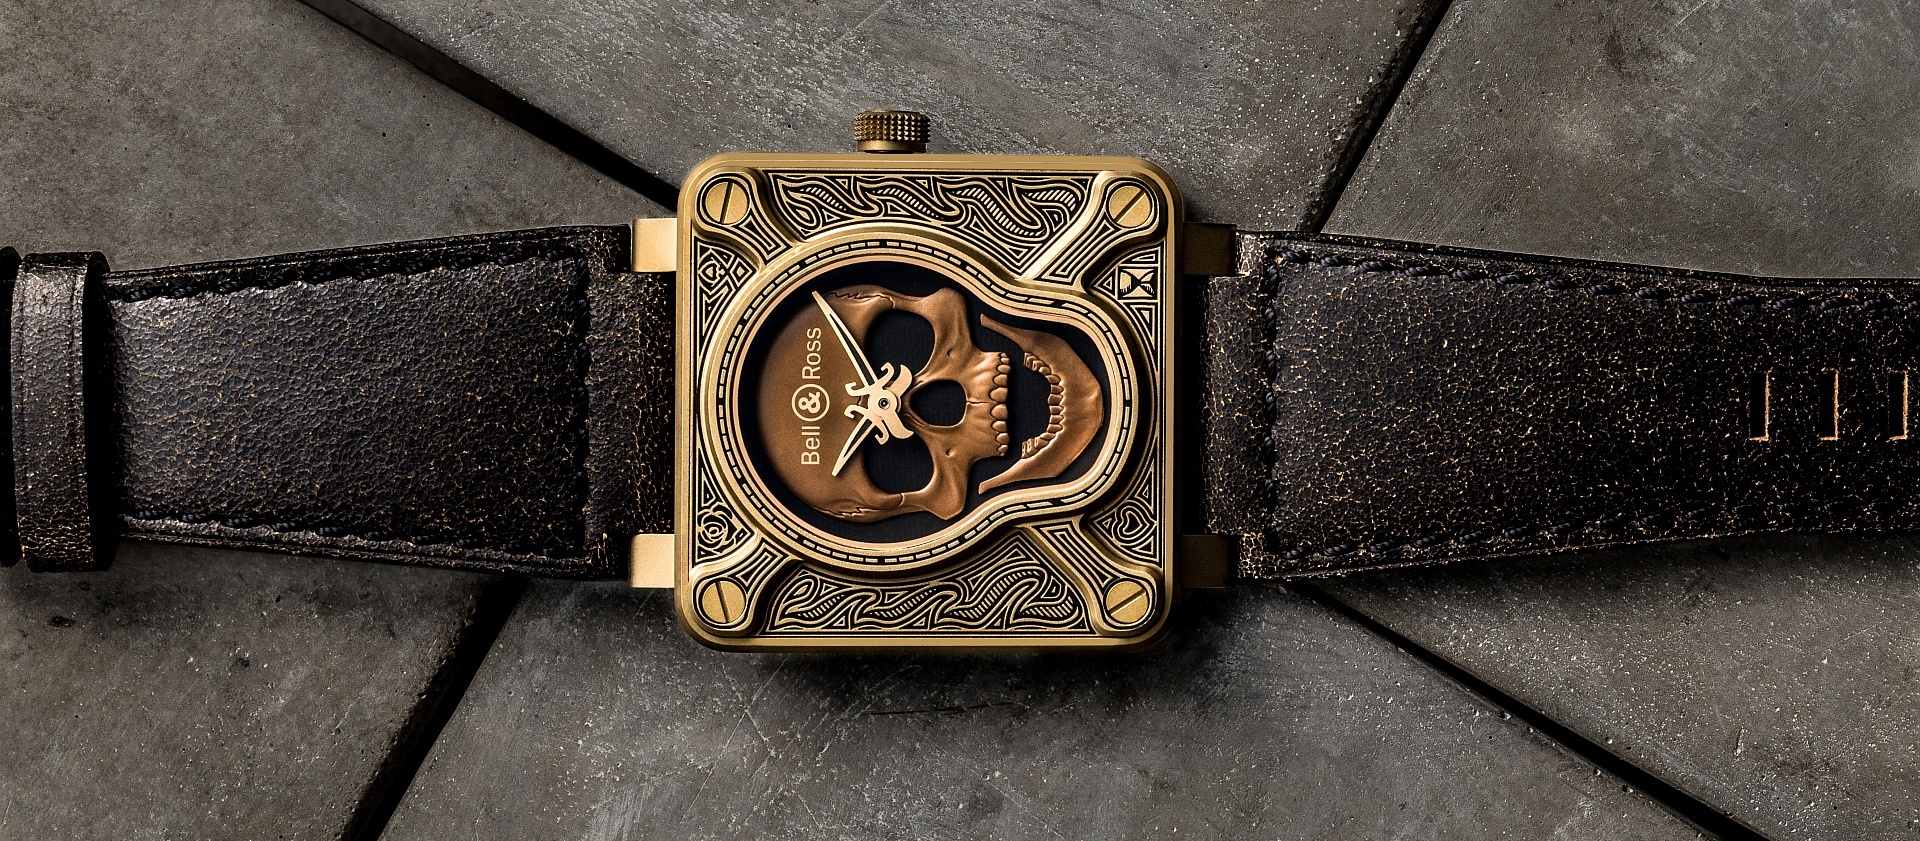 BELL & ROSS BR01 Burning Skull Bronze中港台獨家發售限量版